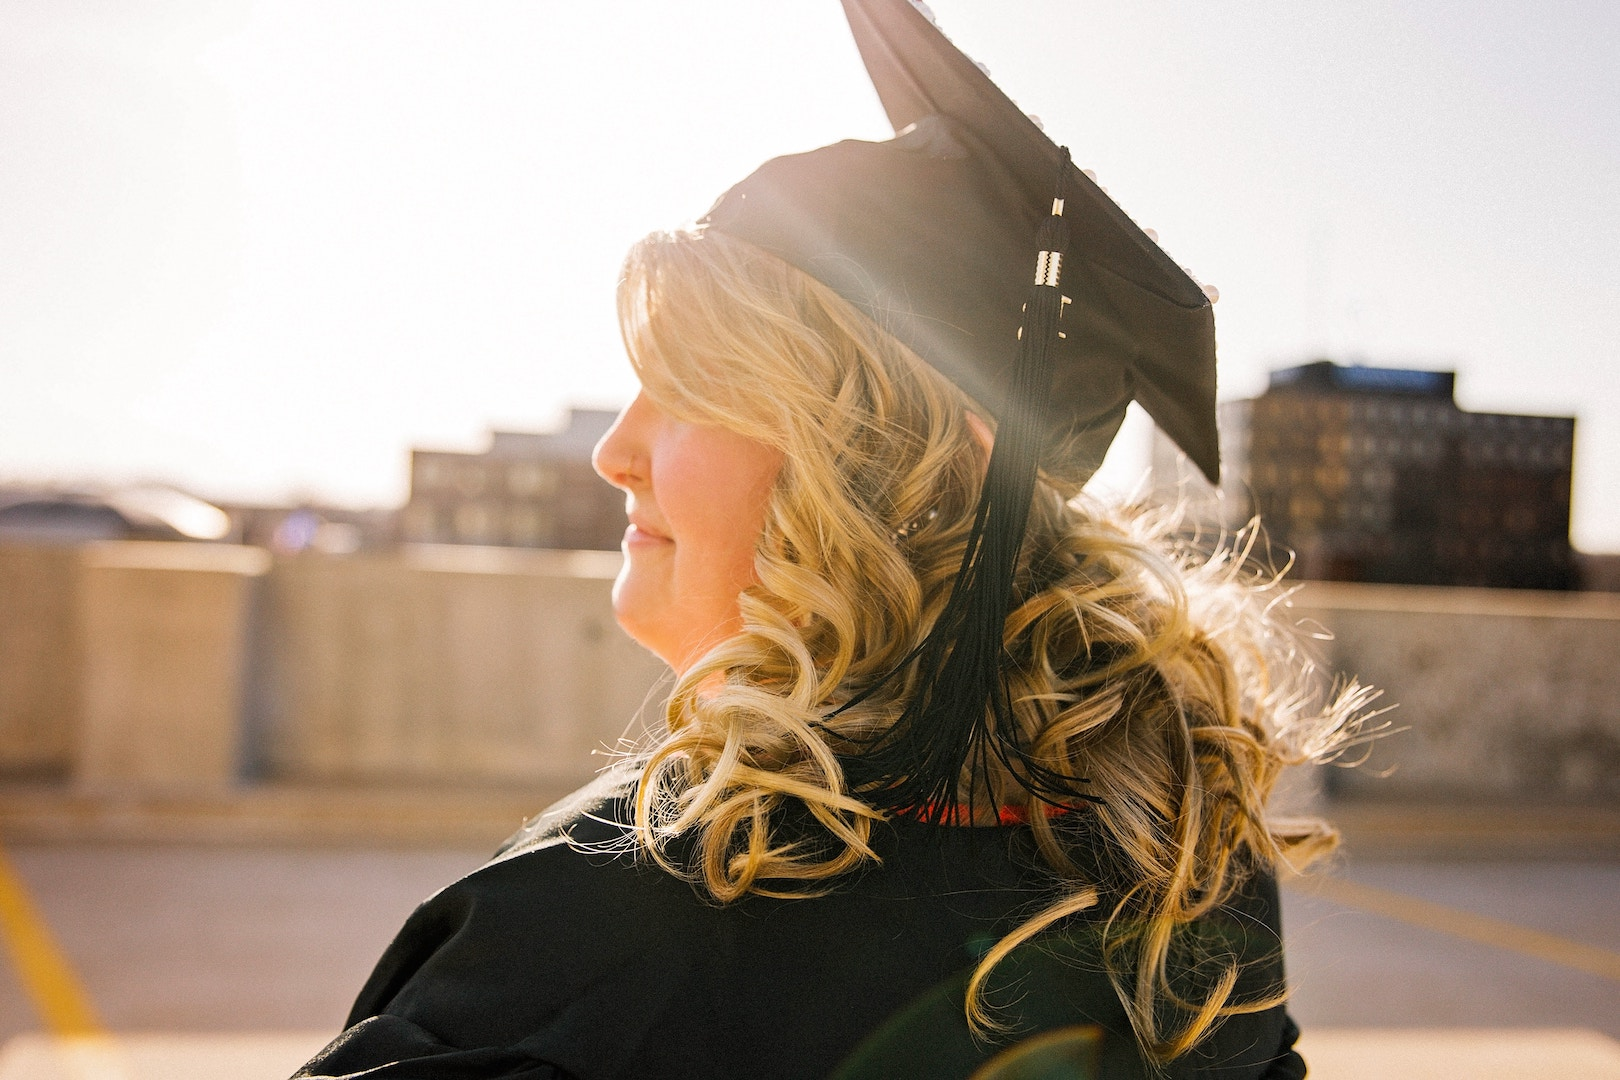 graduate-cap-sun-blonde-woman